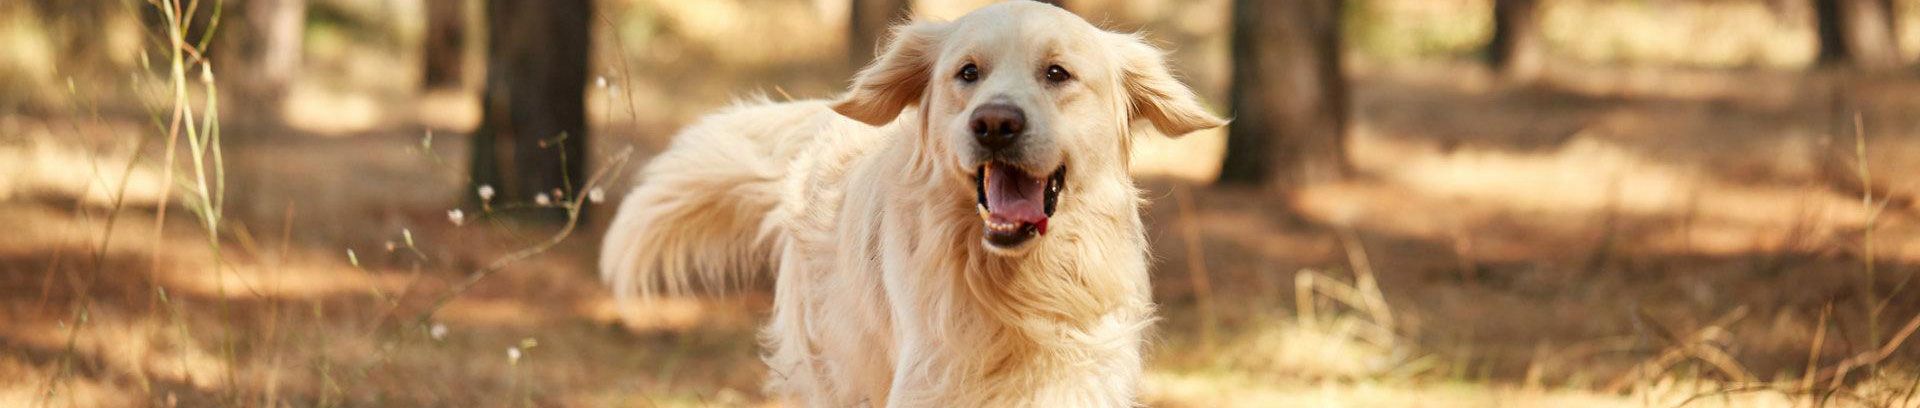 Dog Price List in India 2019 - Find Your Budget-Friendly Dog